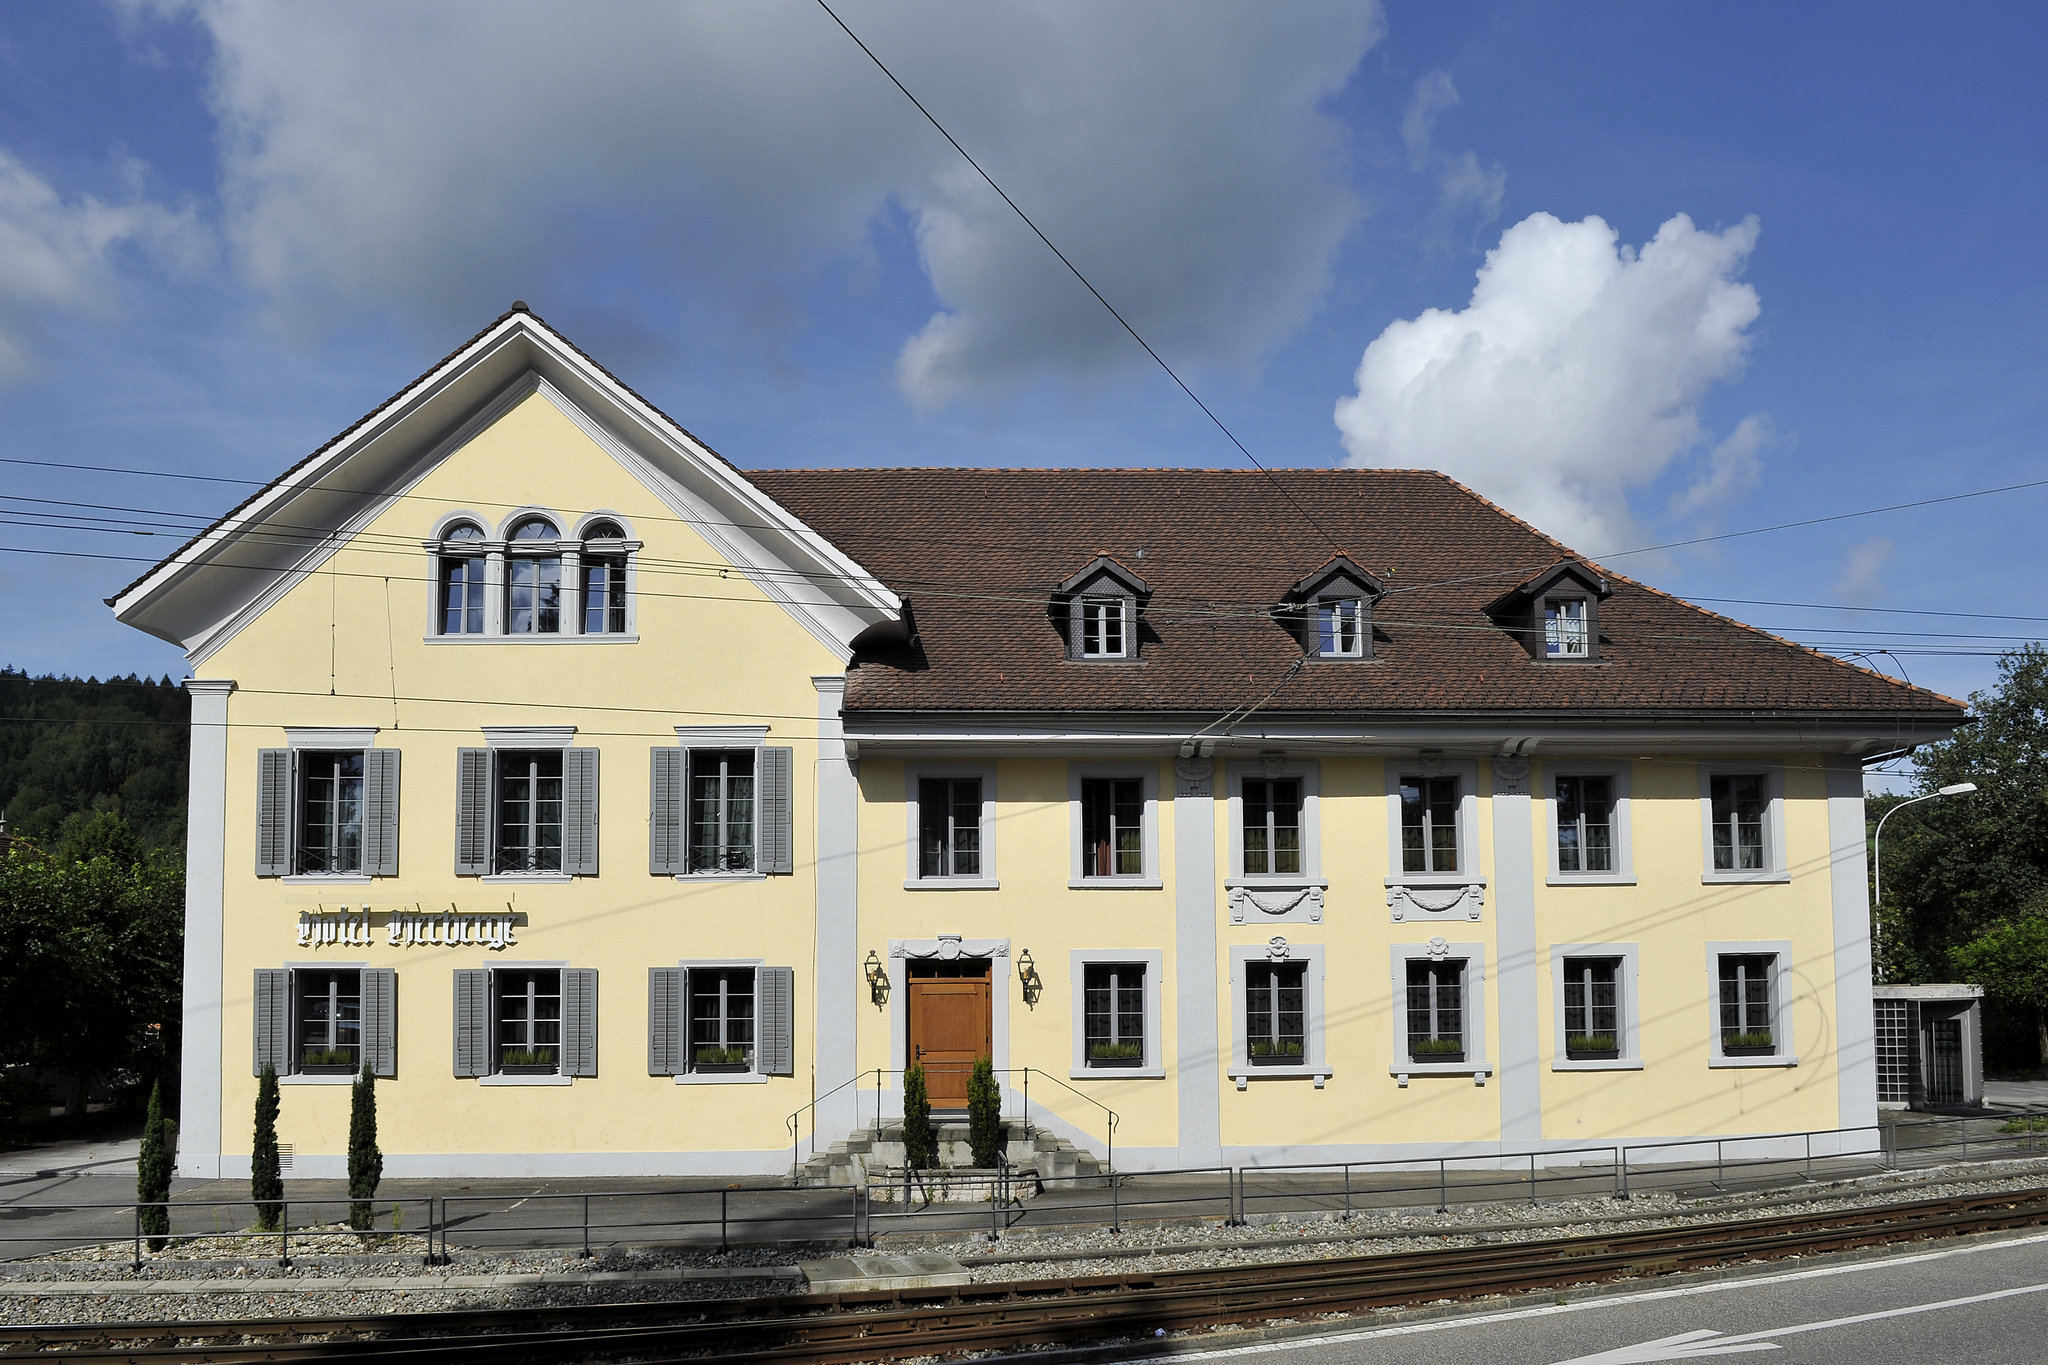 Herberge Teufenthal